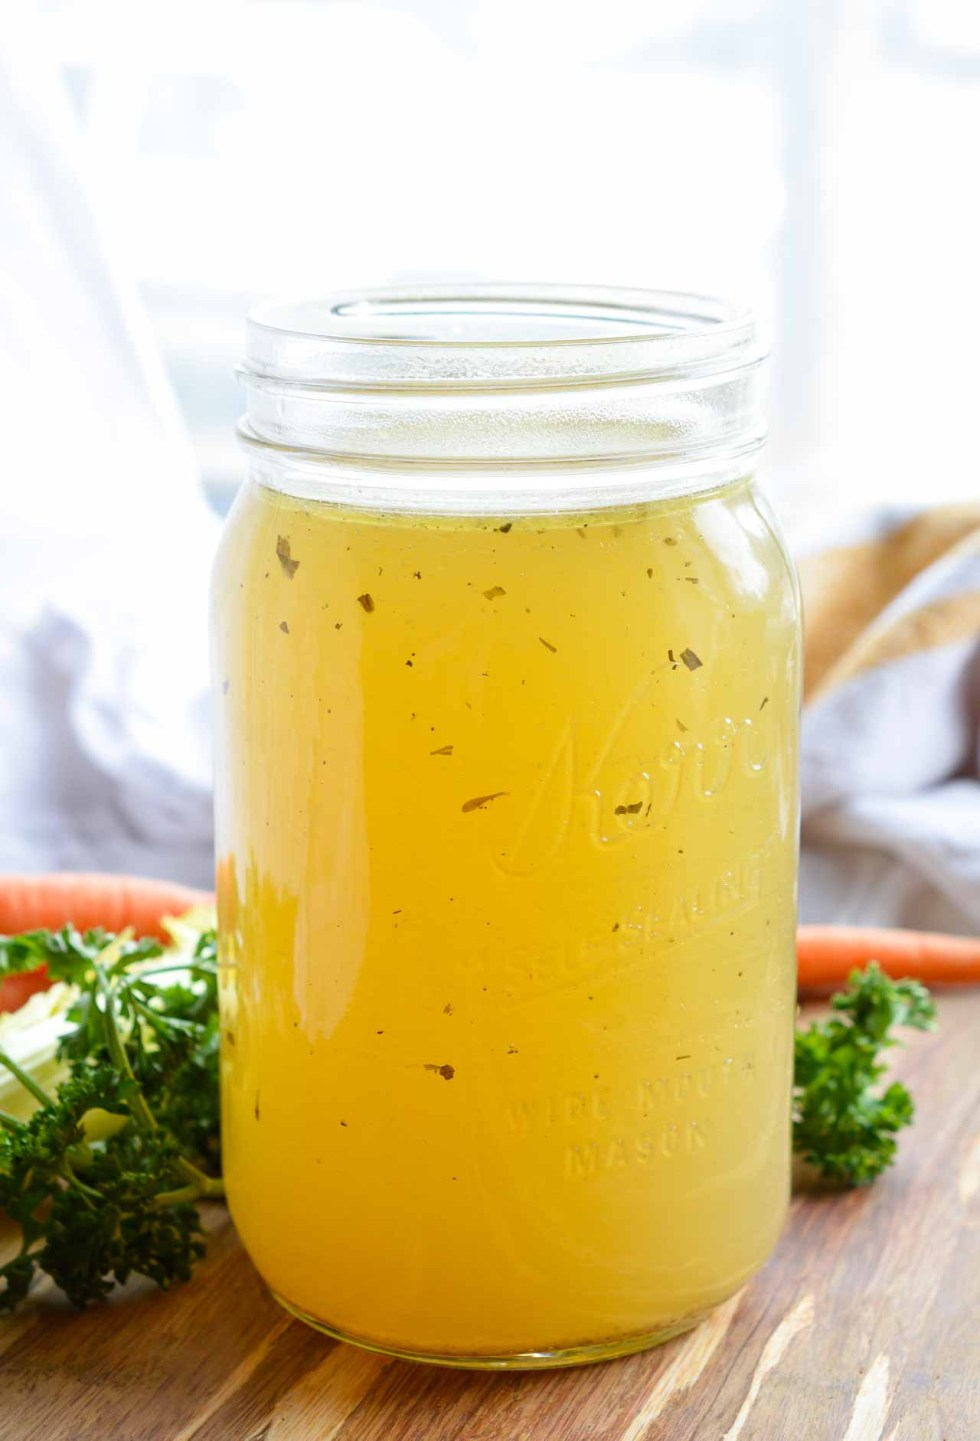 This Homemade Chicken Stock Recipe is so flavorful and easy to make. Just toss the ingredients into your slow cooker and forget about it. 12 hours later you have the most amazing chicken broth just waiting to be used! Whole30, Paleo #paleorecipes #whole30recipes